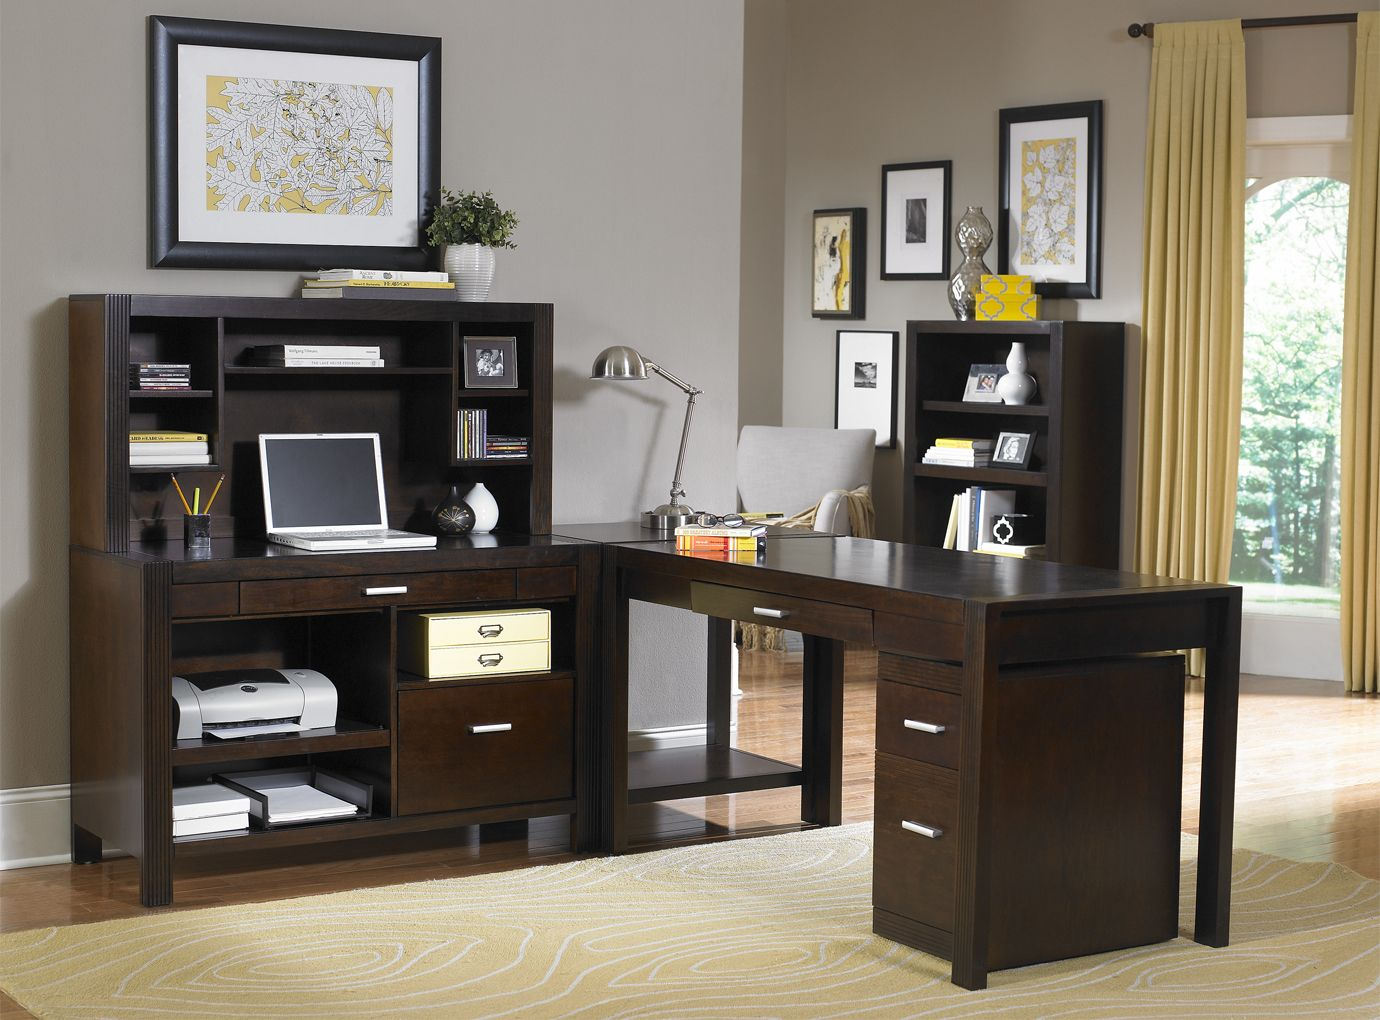 Martin Furniture Manufacture Entertainment Centers and